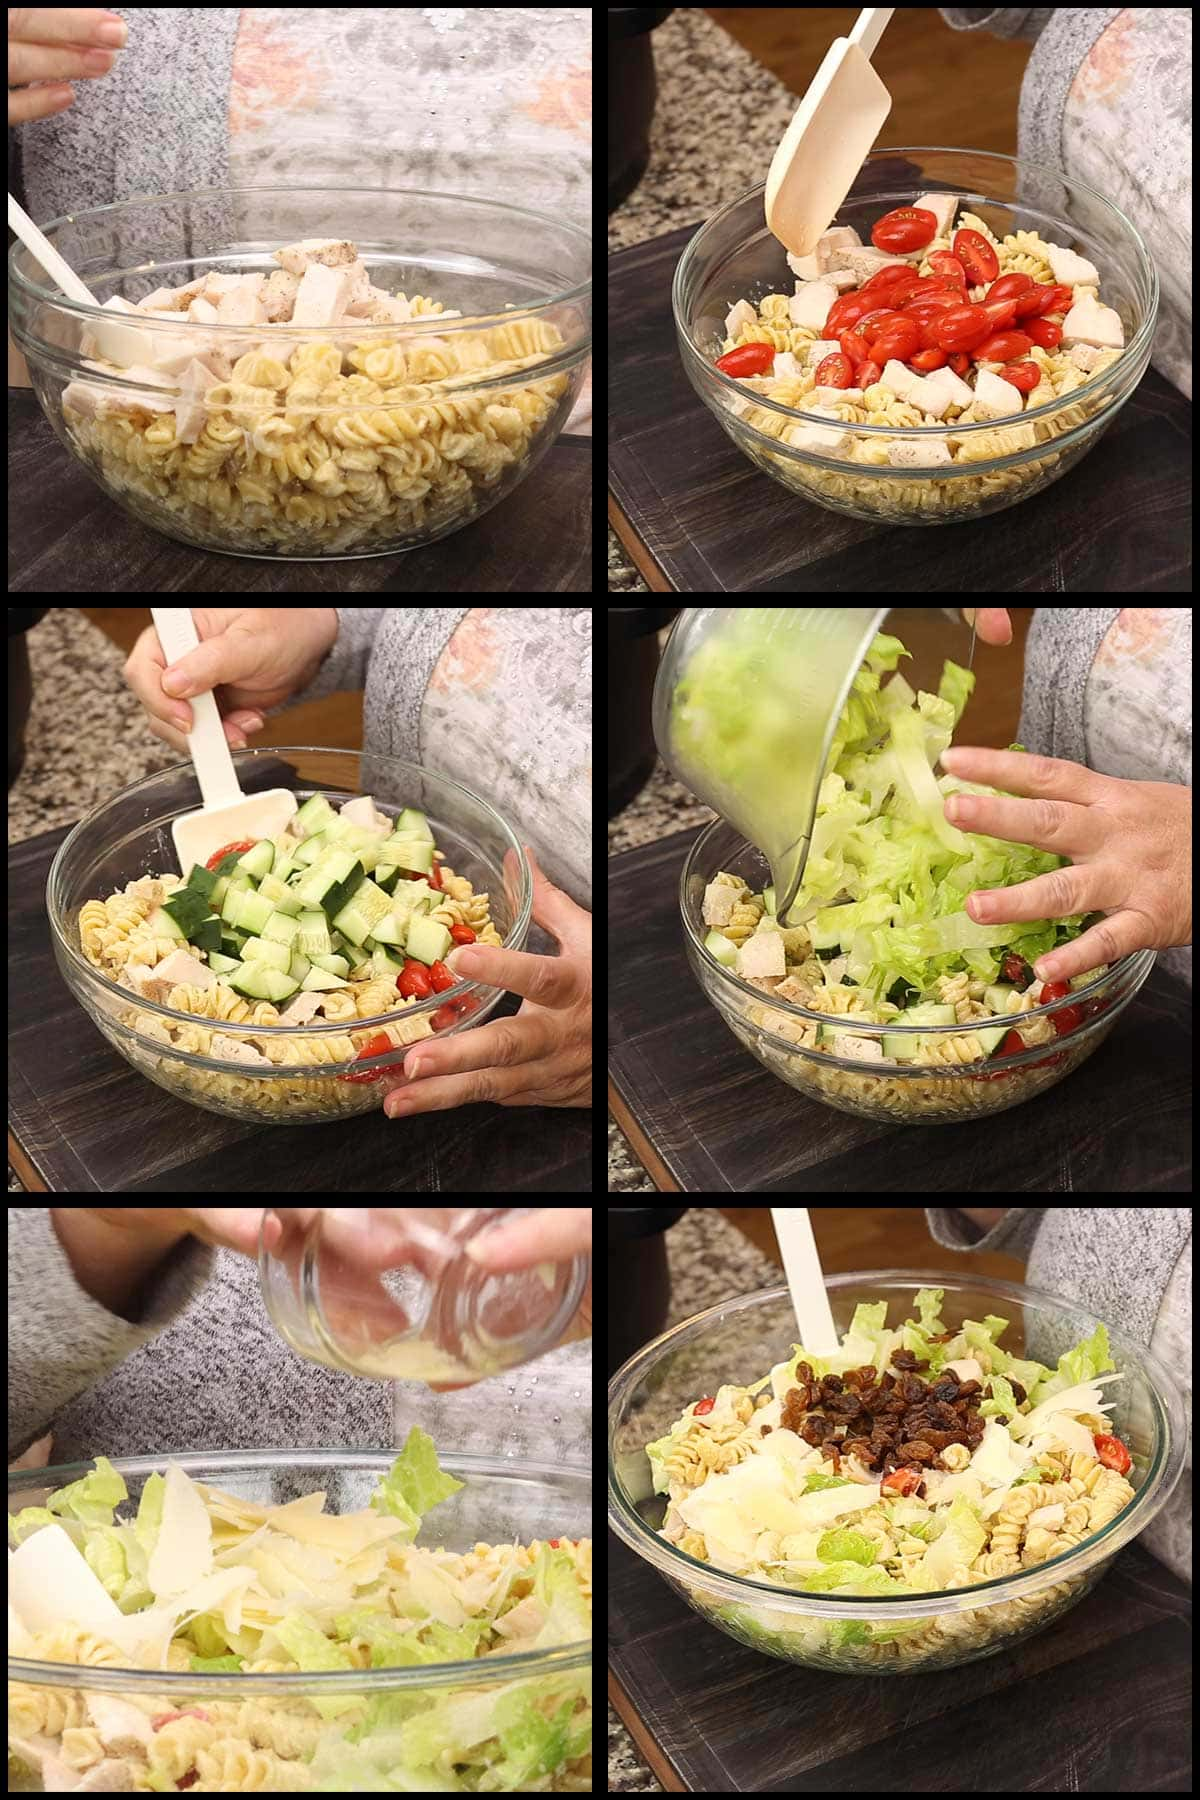 adding the chicken, vegetables, parmesan, raisins to the chilled pasta in a large glass bowl